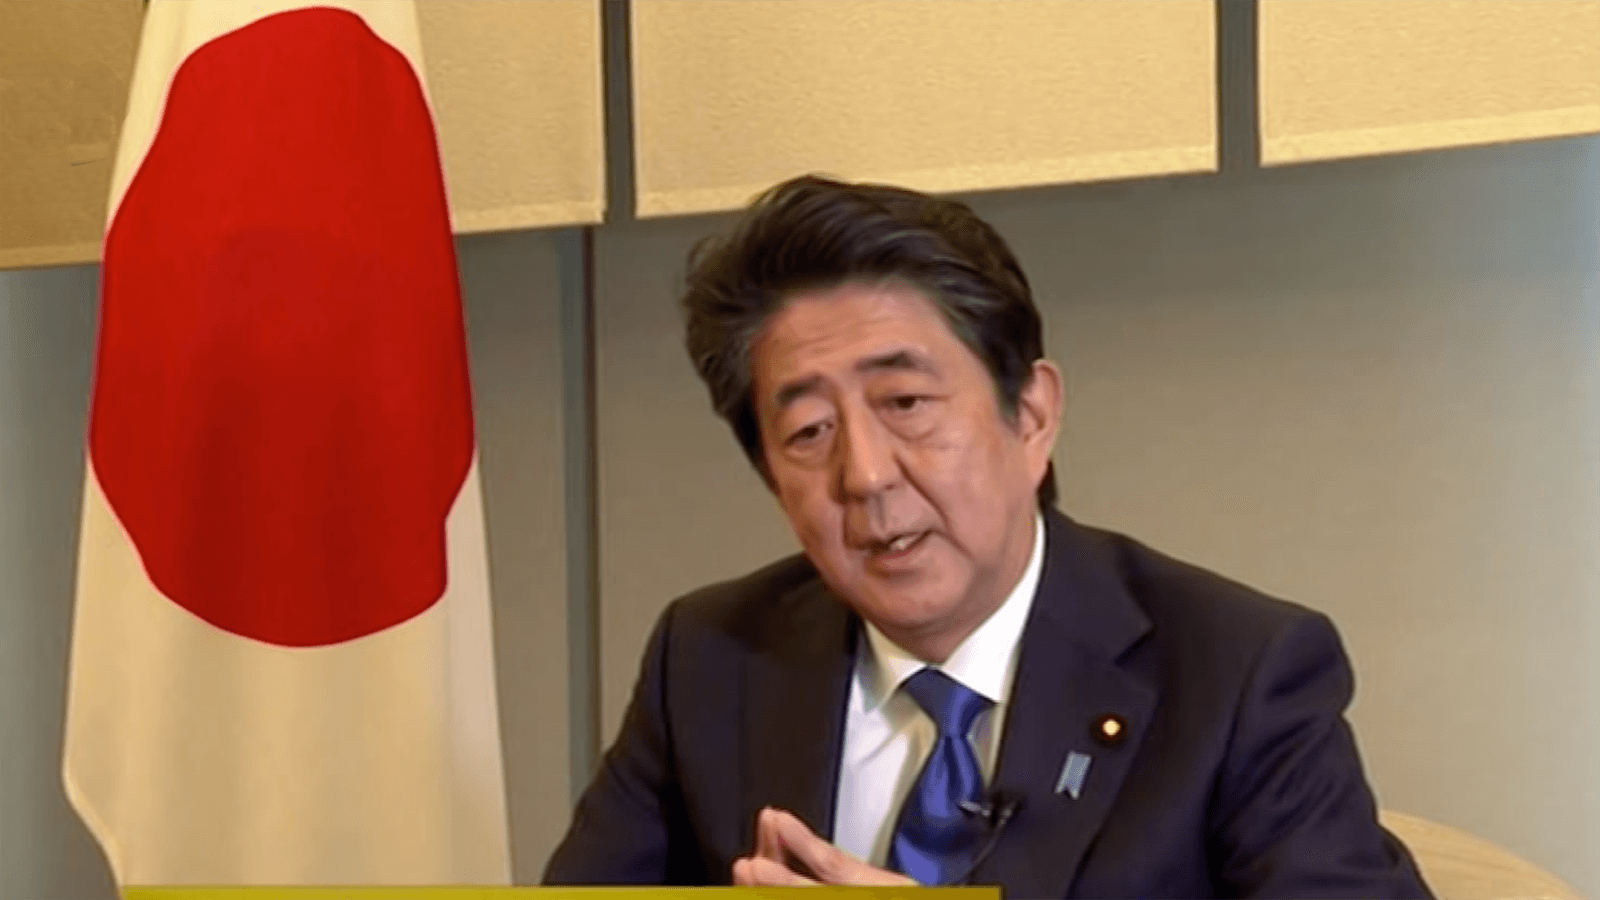 Abe impressed by tremendous changes in China in recent decades